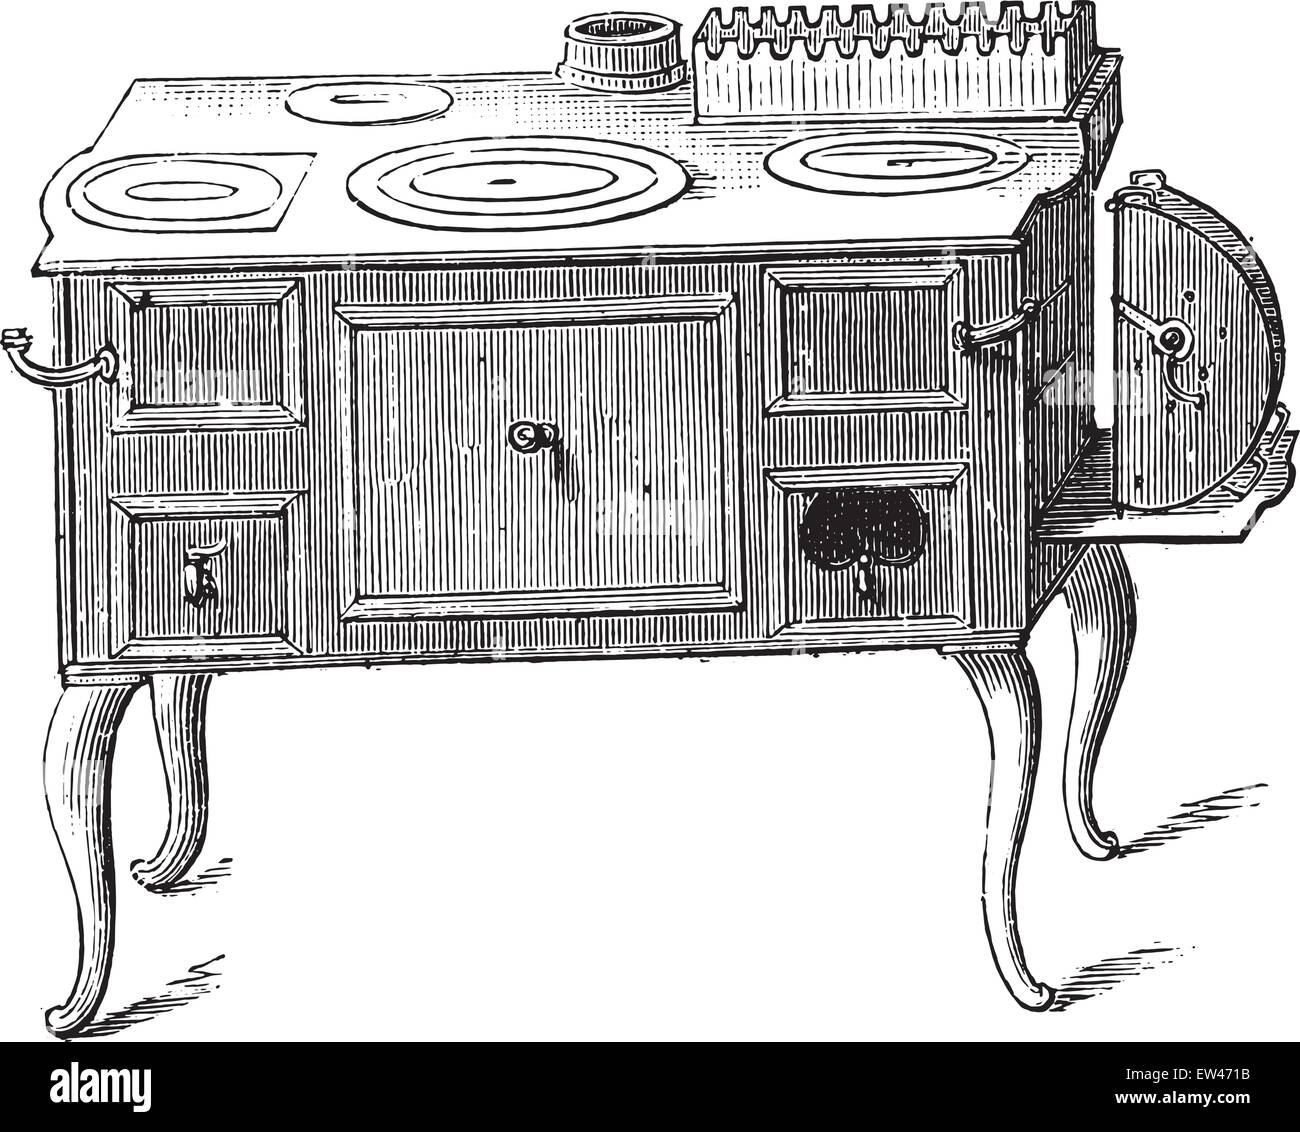 Economic stove, vintage engraved illustration. - Stock Vector